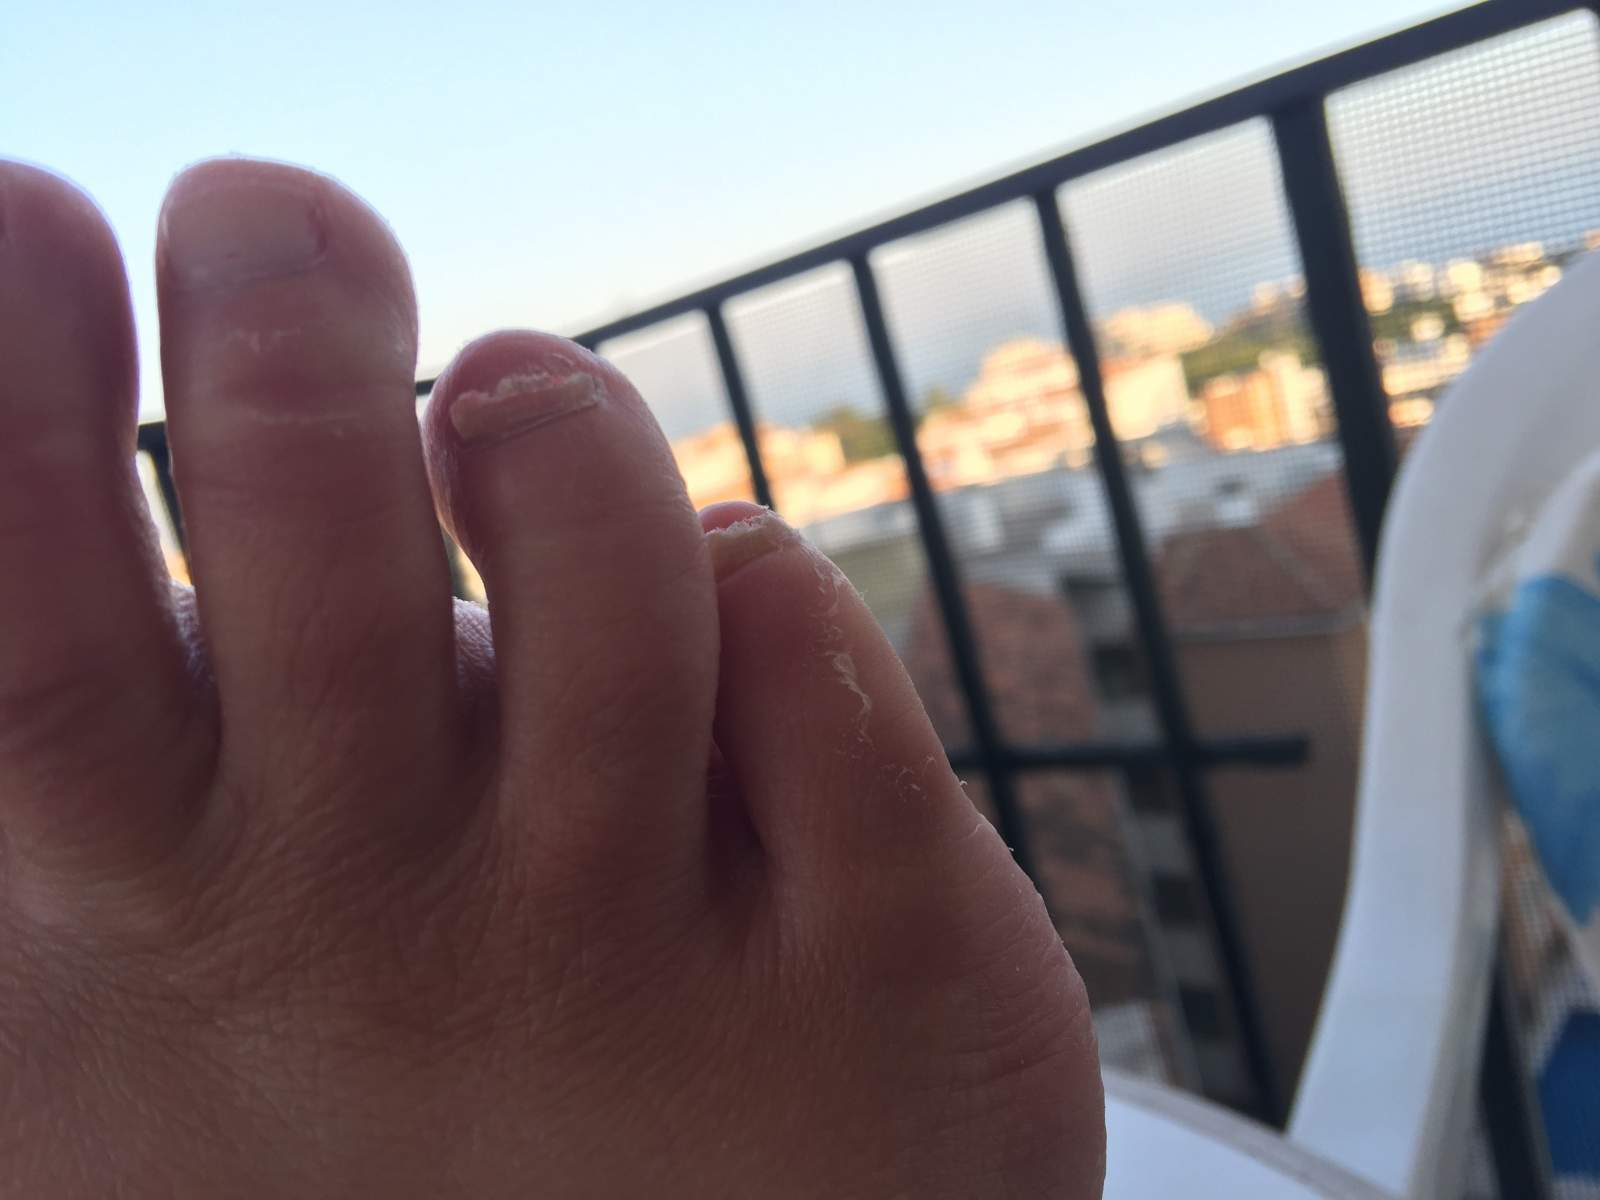 fungal nail treatment day 0